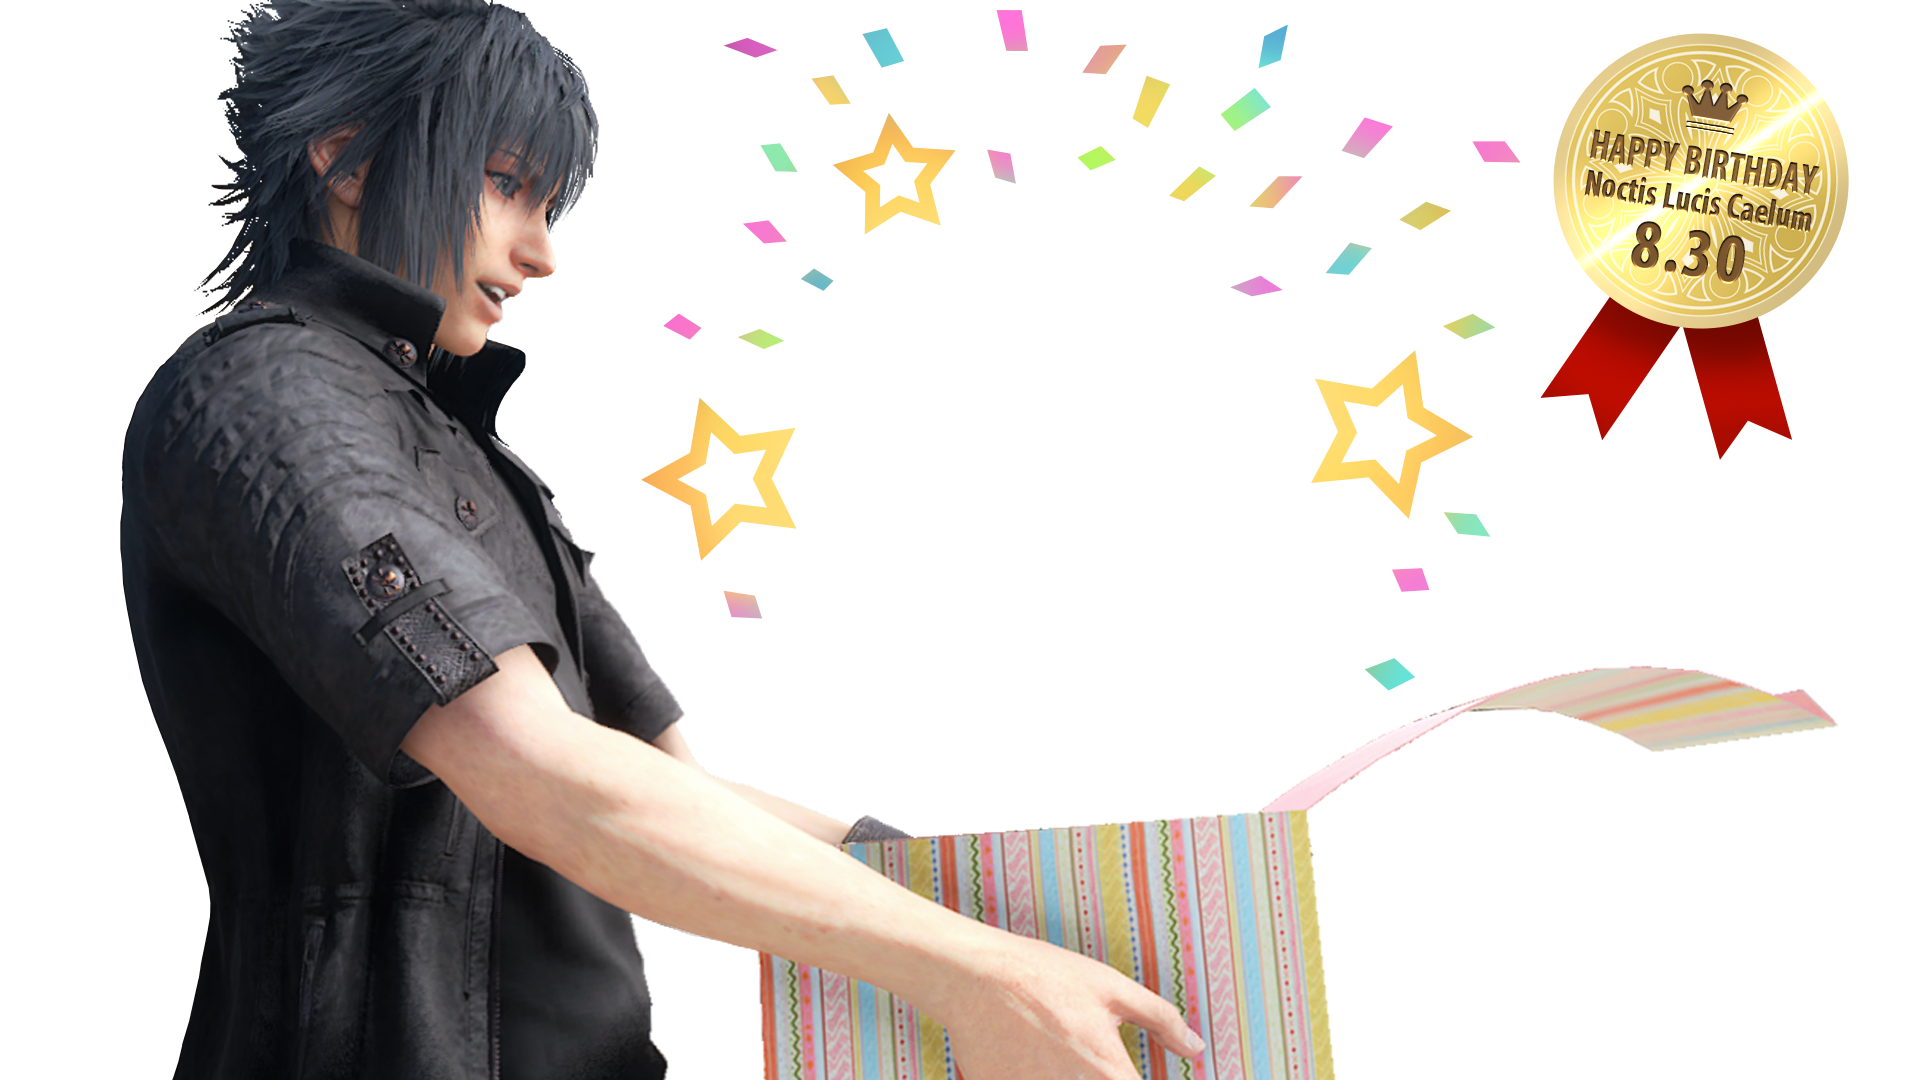 Noctis transparent ffxiv. In the news page